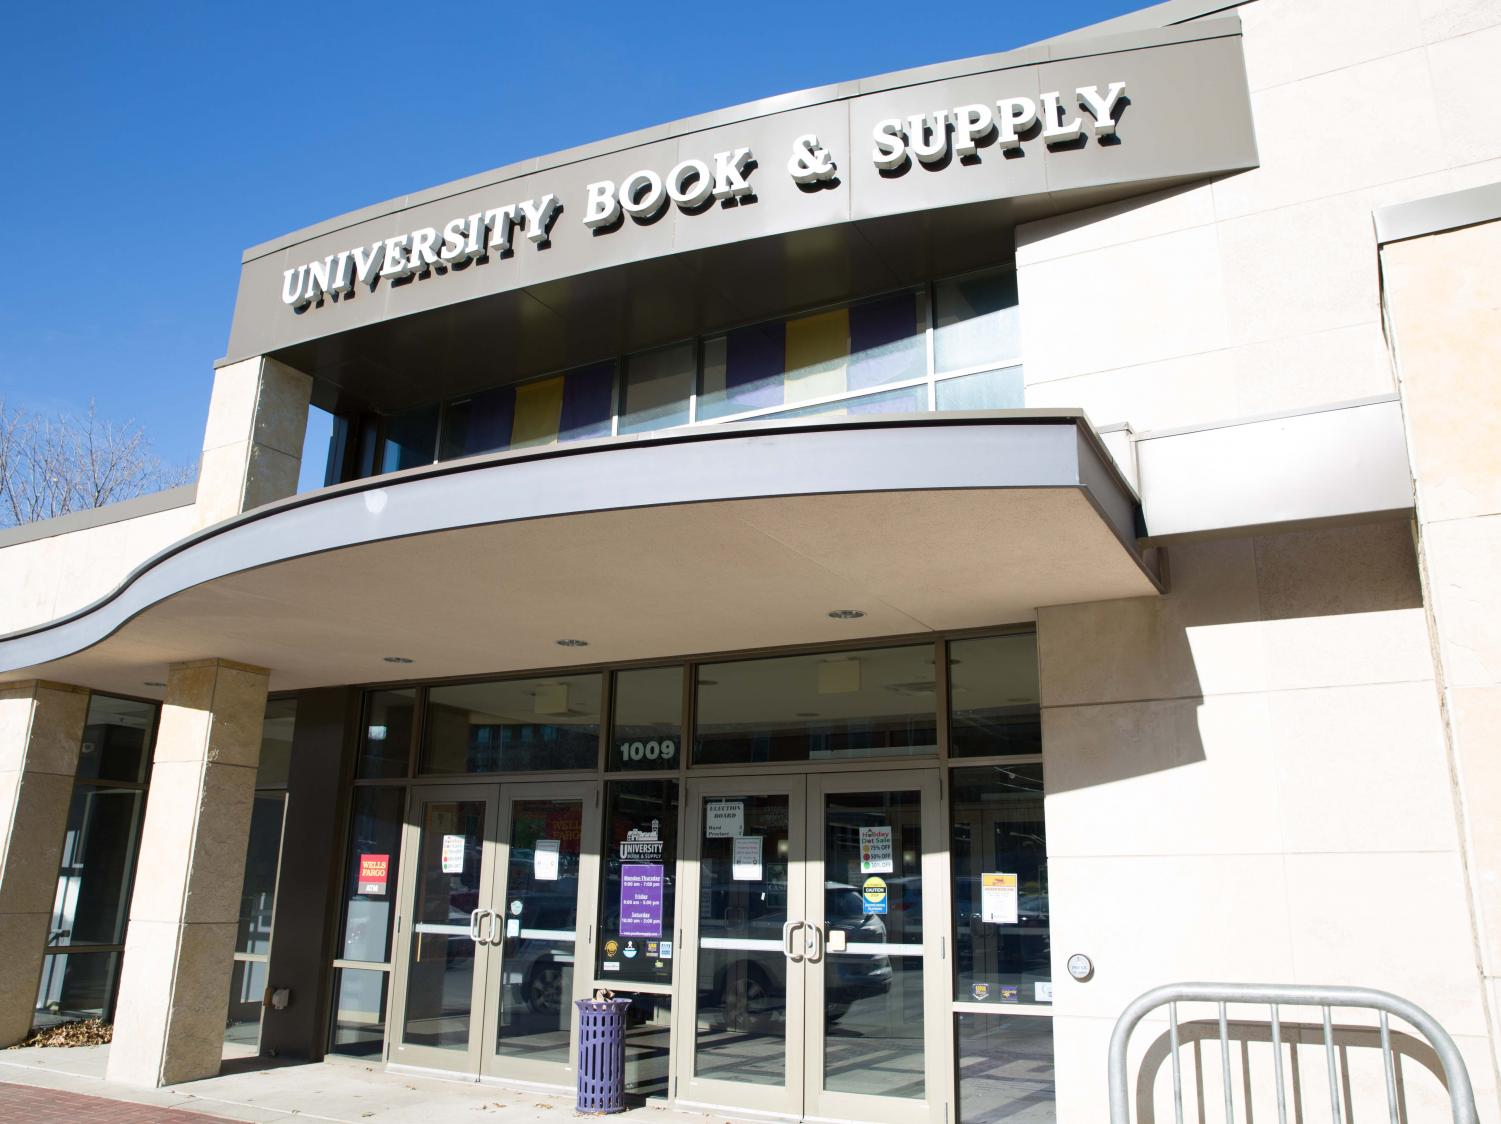 University Book and Supply was acquired by UNI and recently reopened under the new ownership, bringing some new options for students.